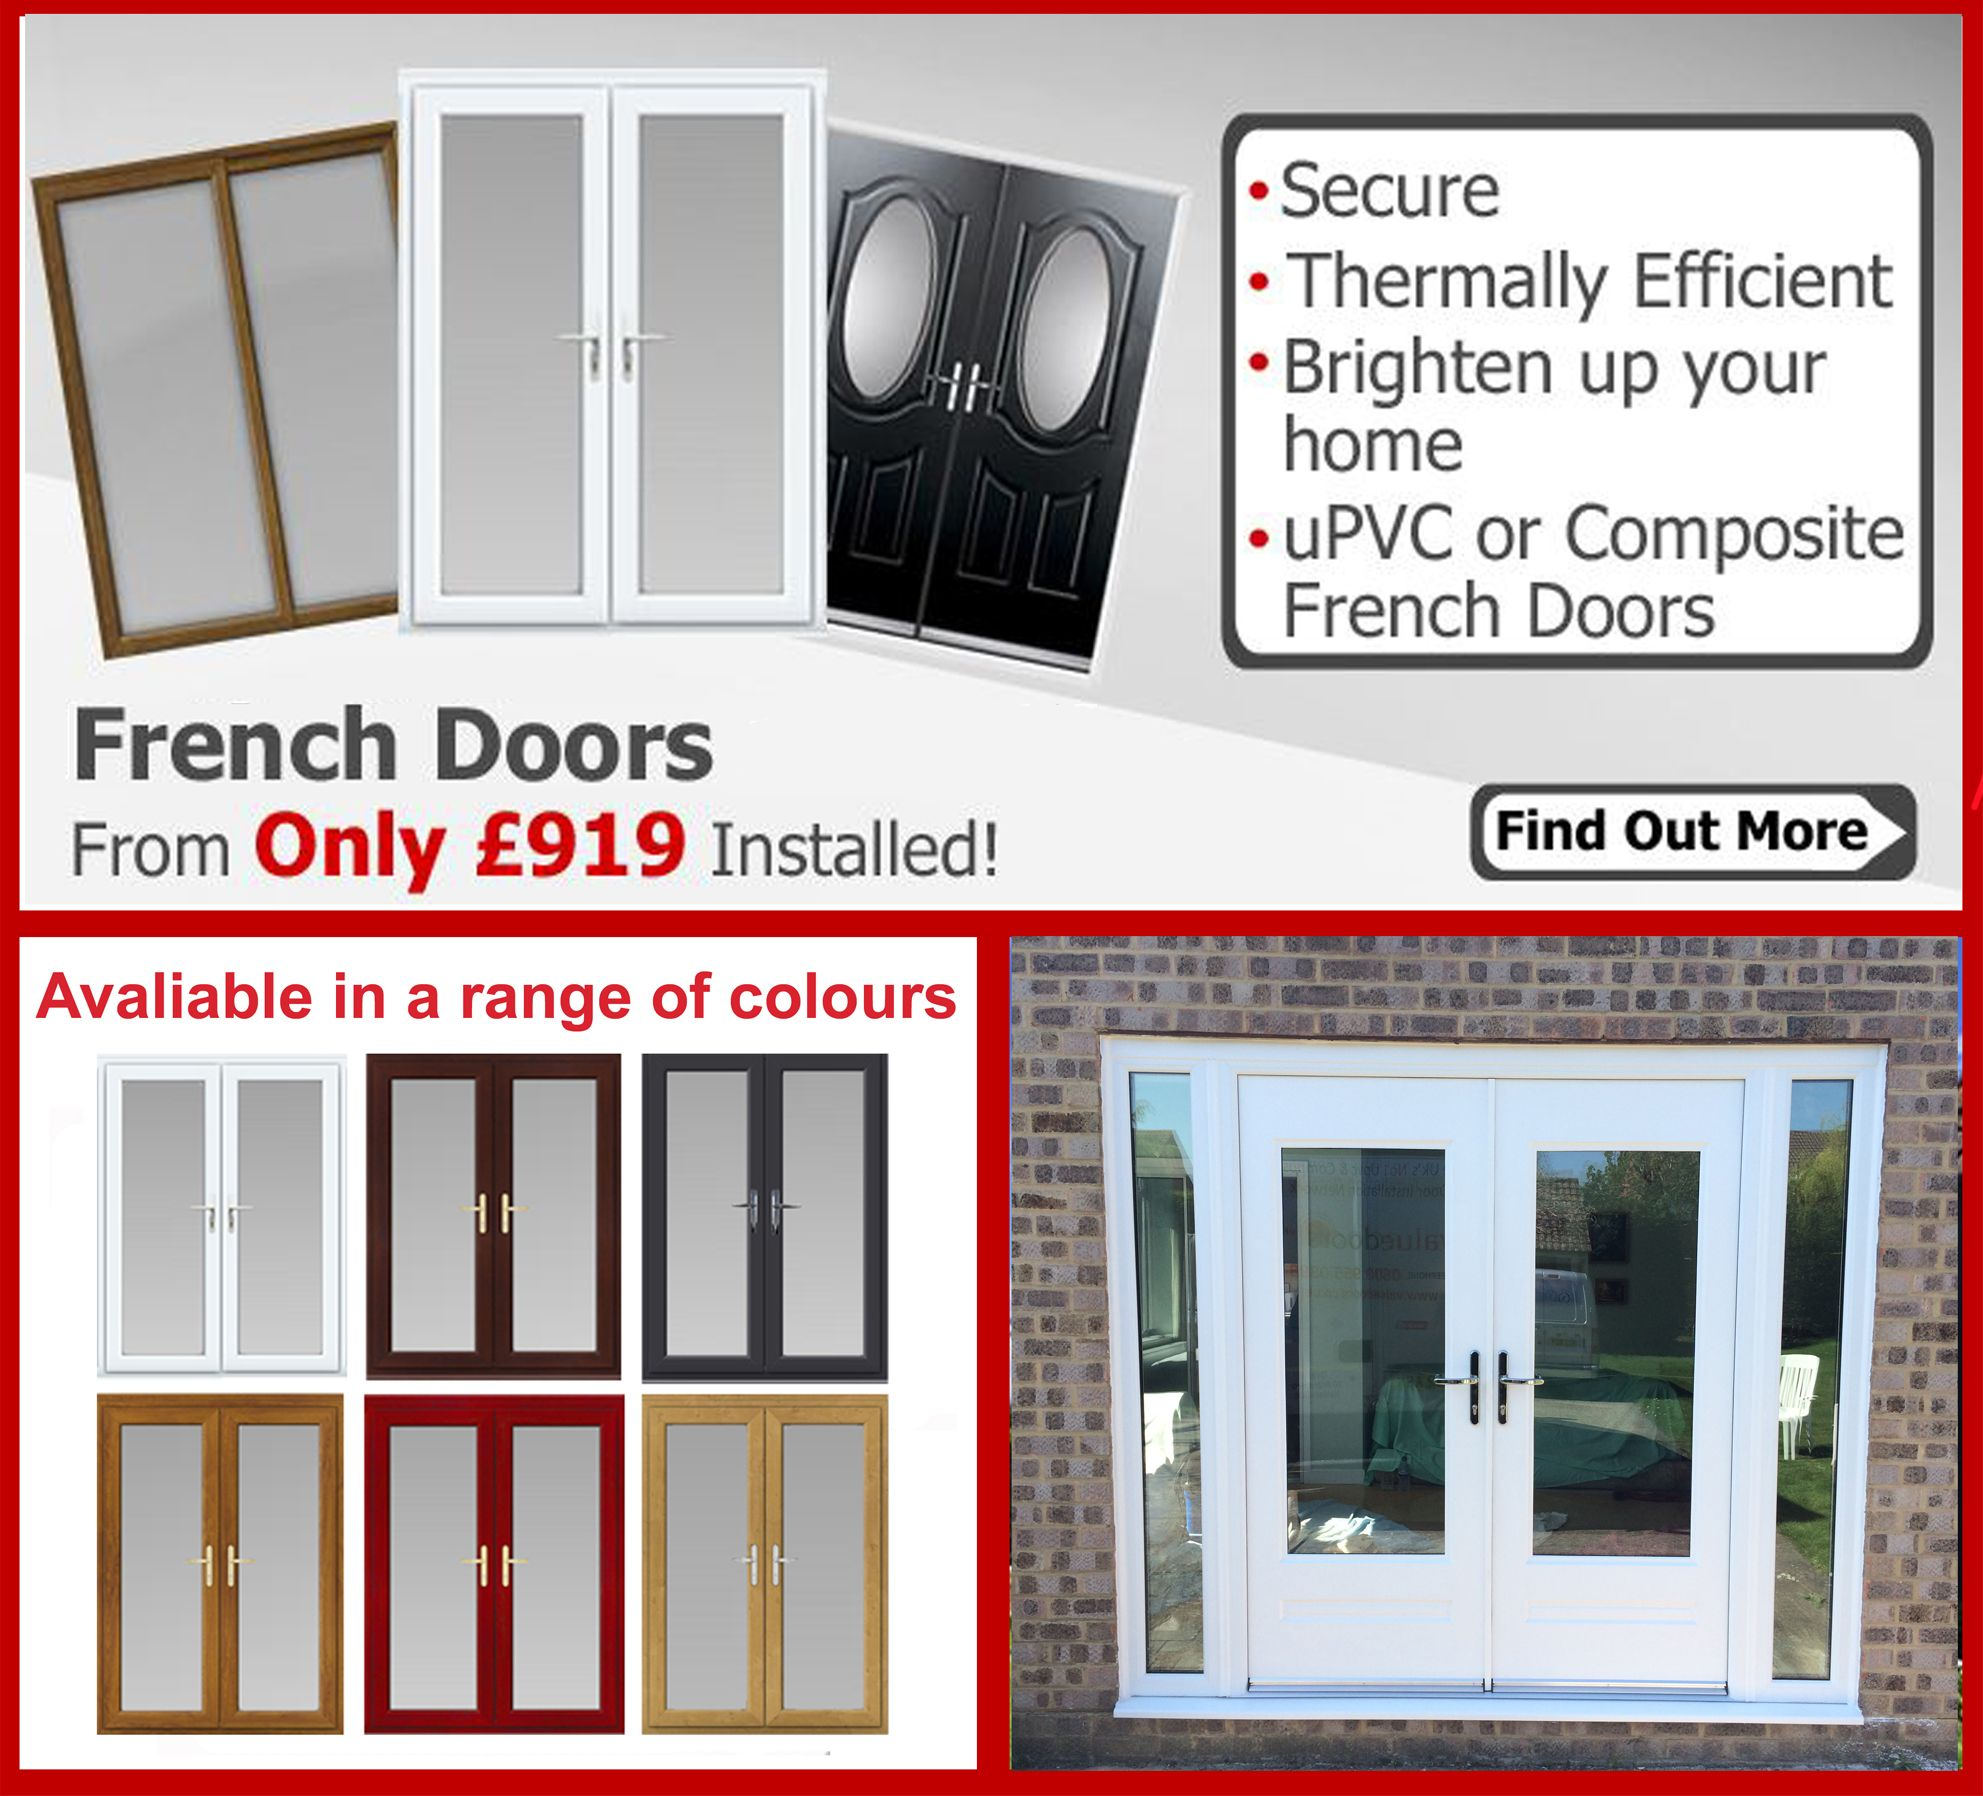 French Doors from Value Doors can help bring light into your home and keep it secure  sc 1 st  Pinterest & French Doors from Value Doors can help bring light into your home ...